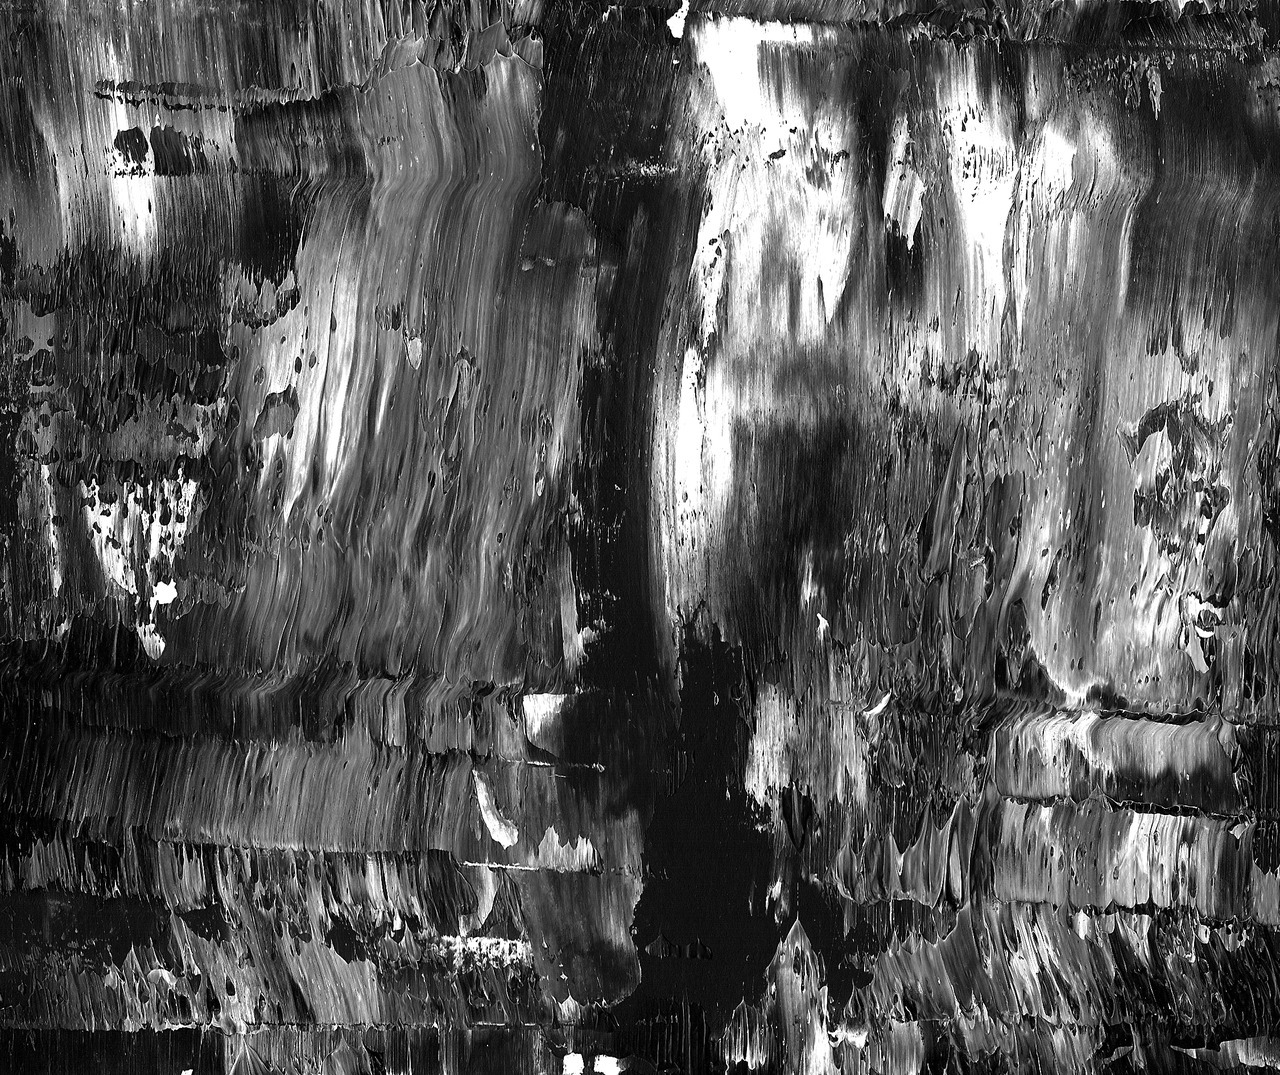 Do a black and white abstract paining clintonmckay: Oil on Rives BFK